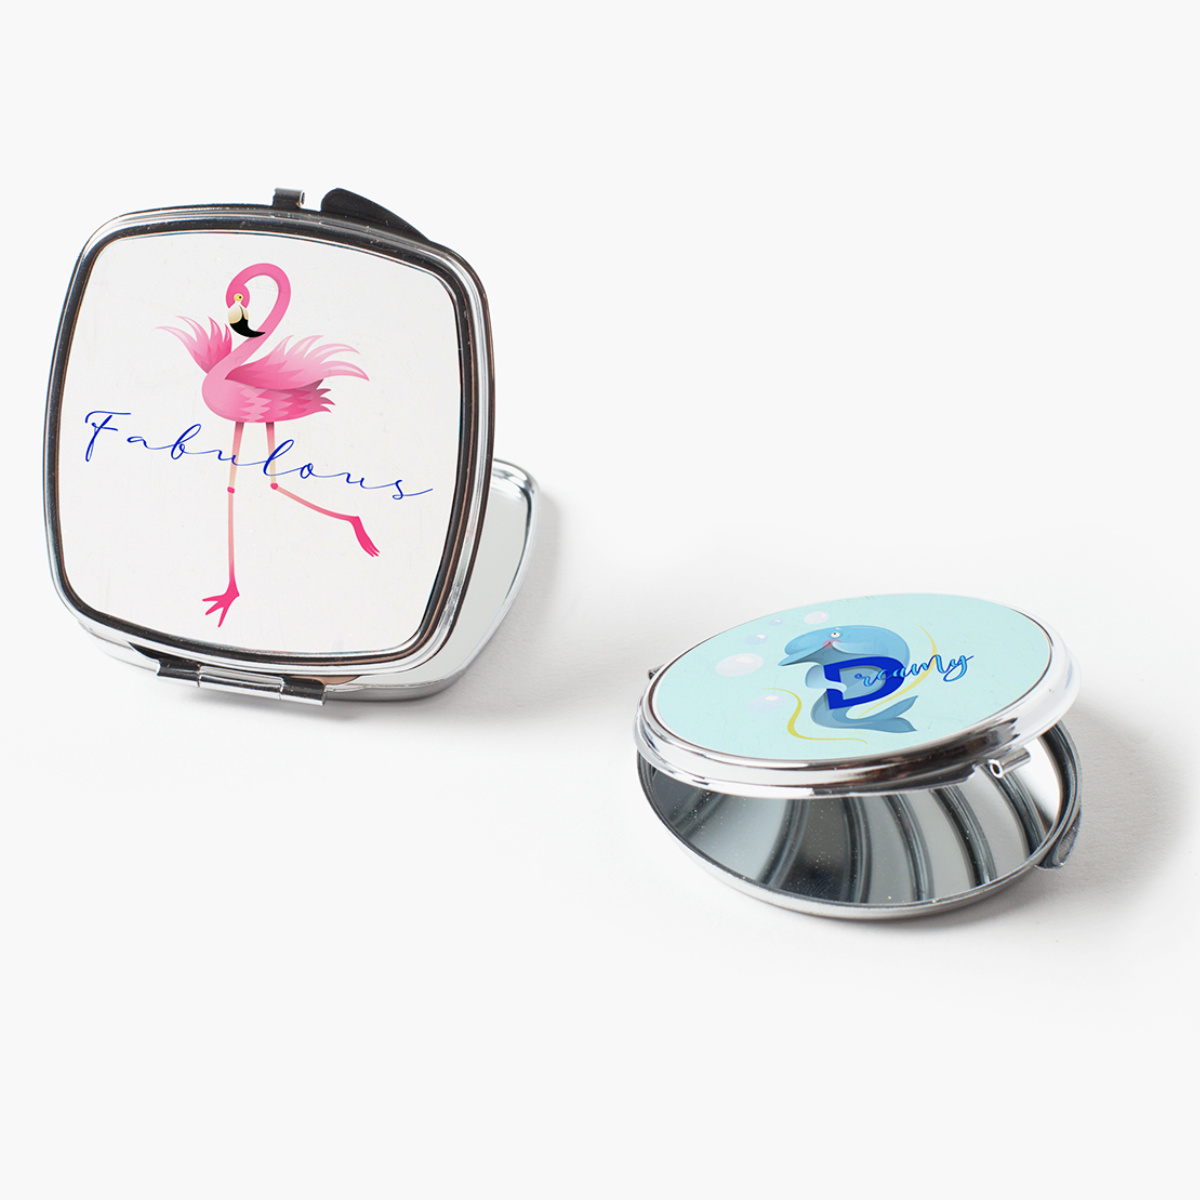 Print On Demand Compact Mirrors With